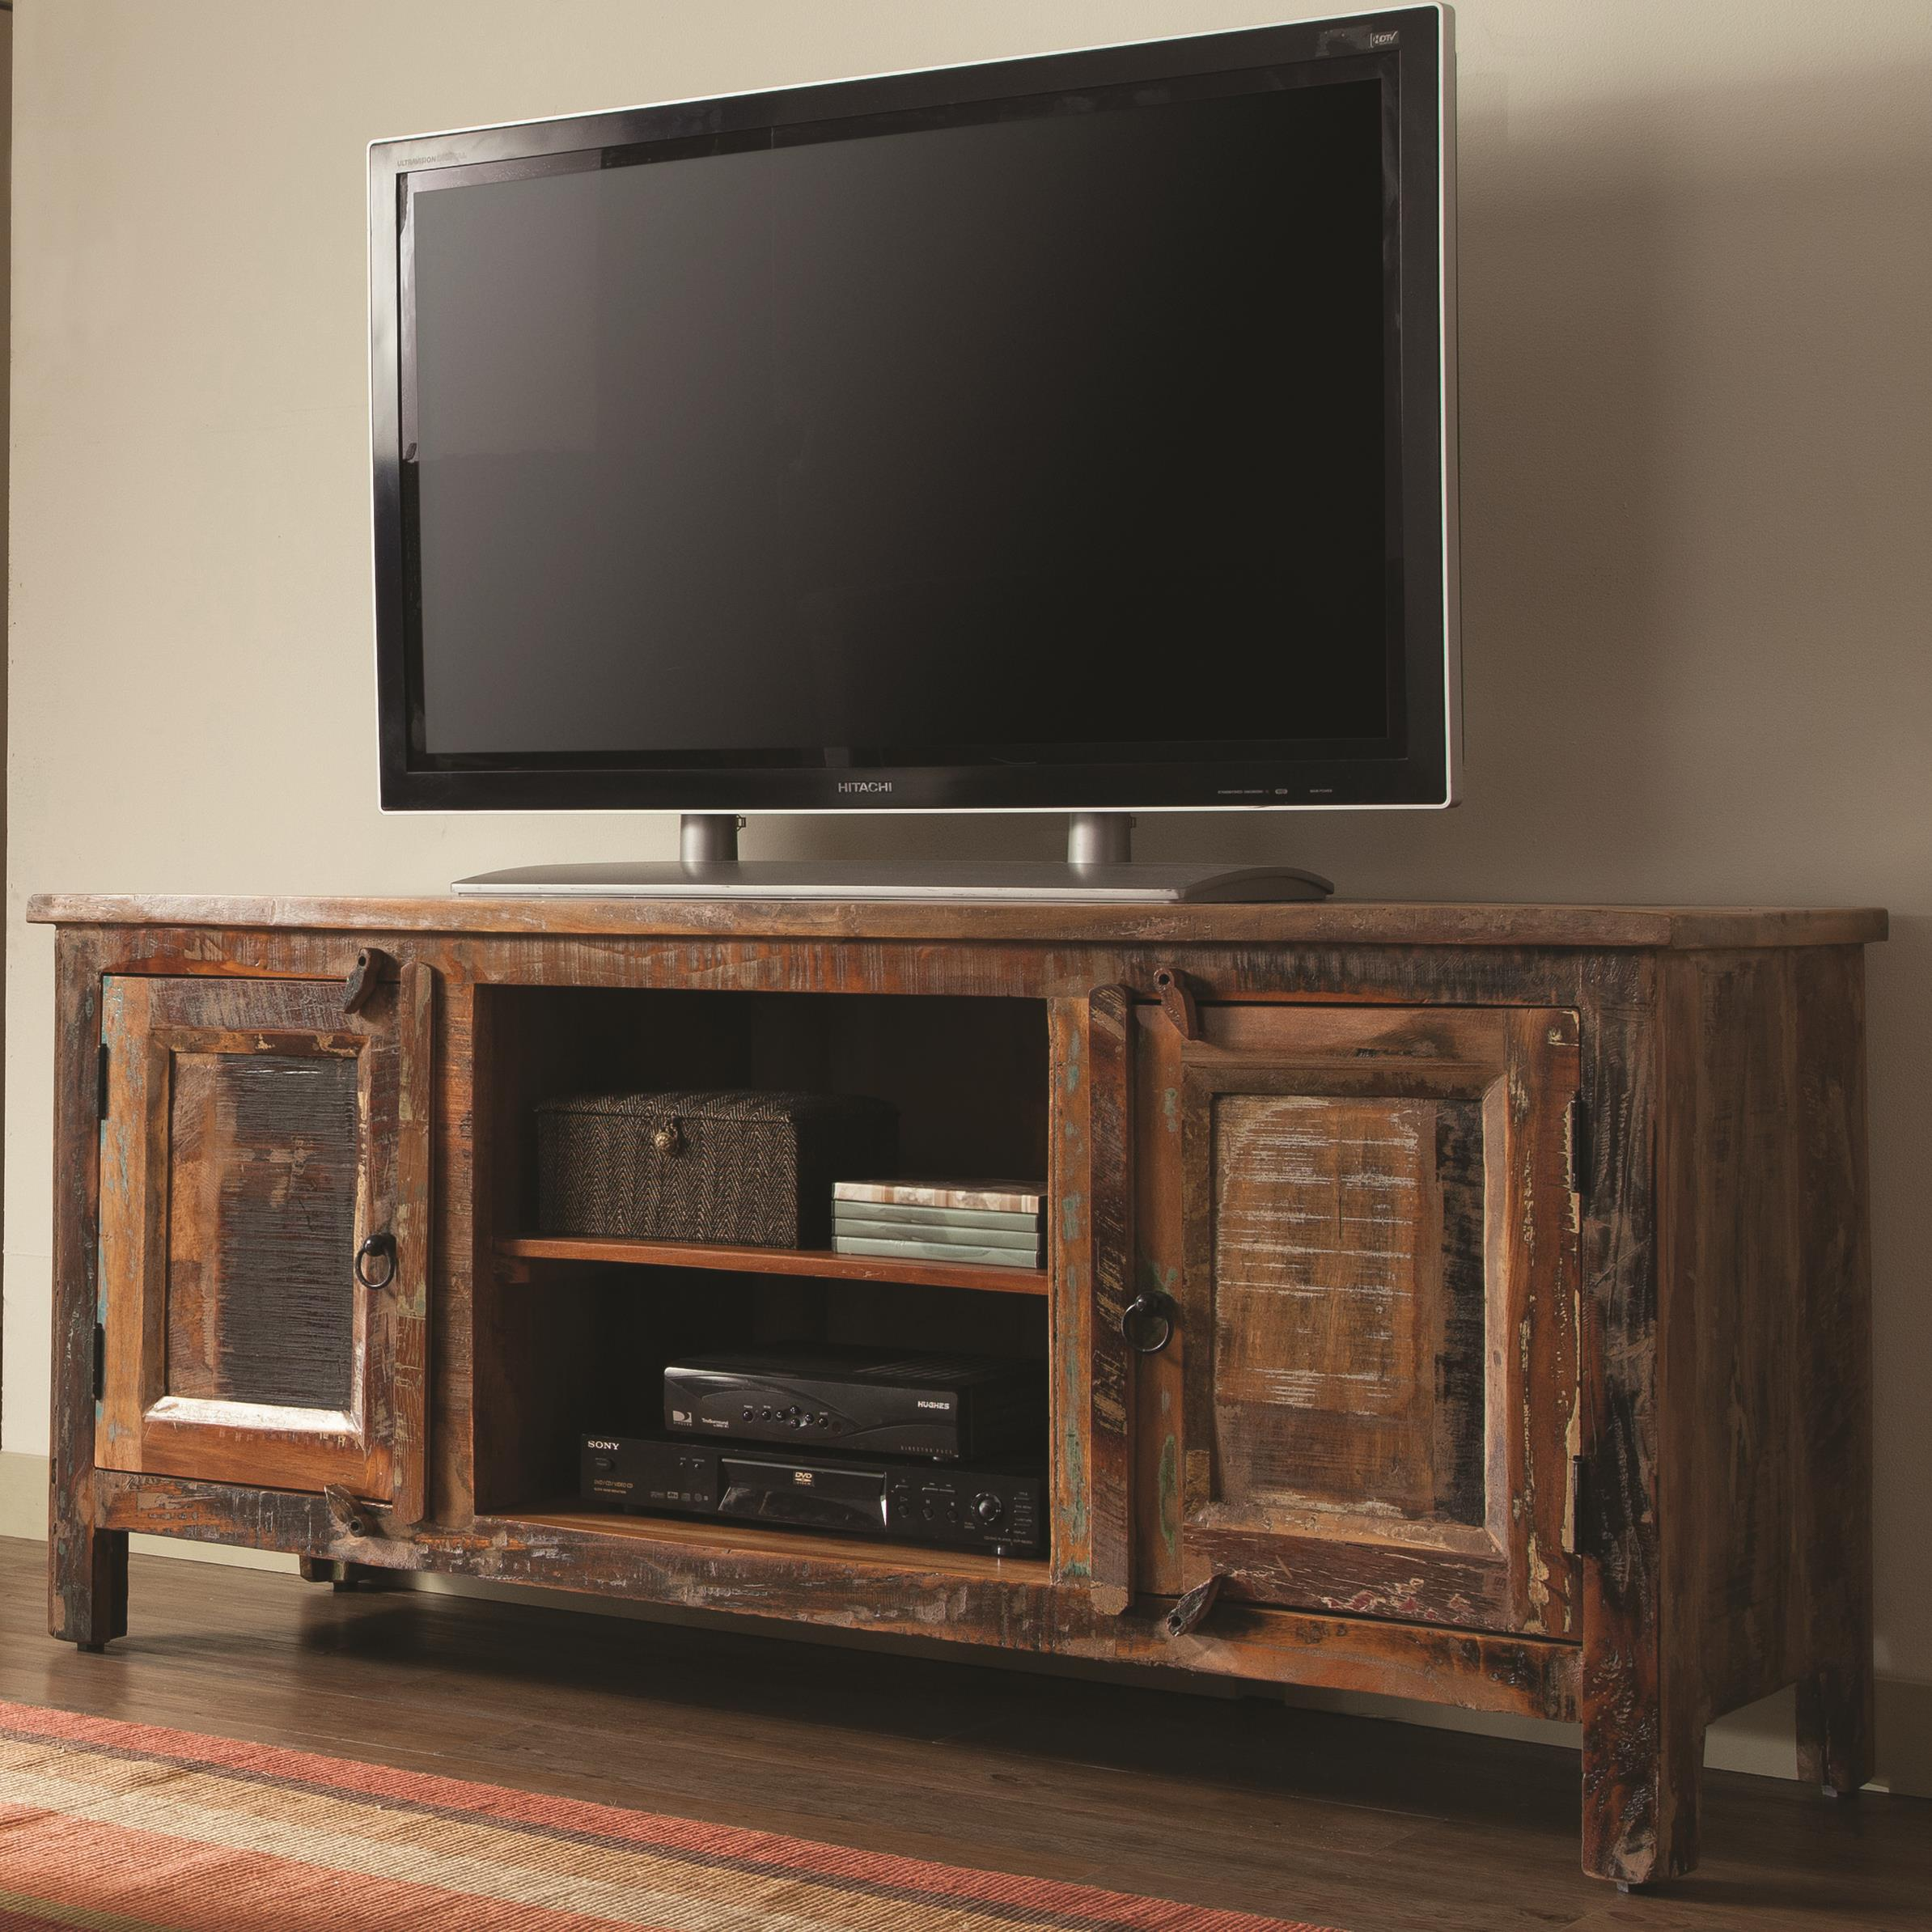 Accent cabinets reclaimed wood tv stand quality furniture at affordable prices in philadelphia Wooden entertainment center furniture